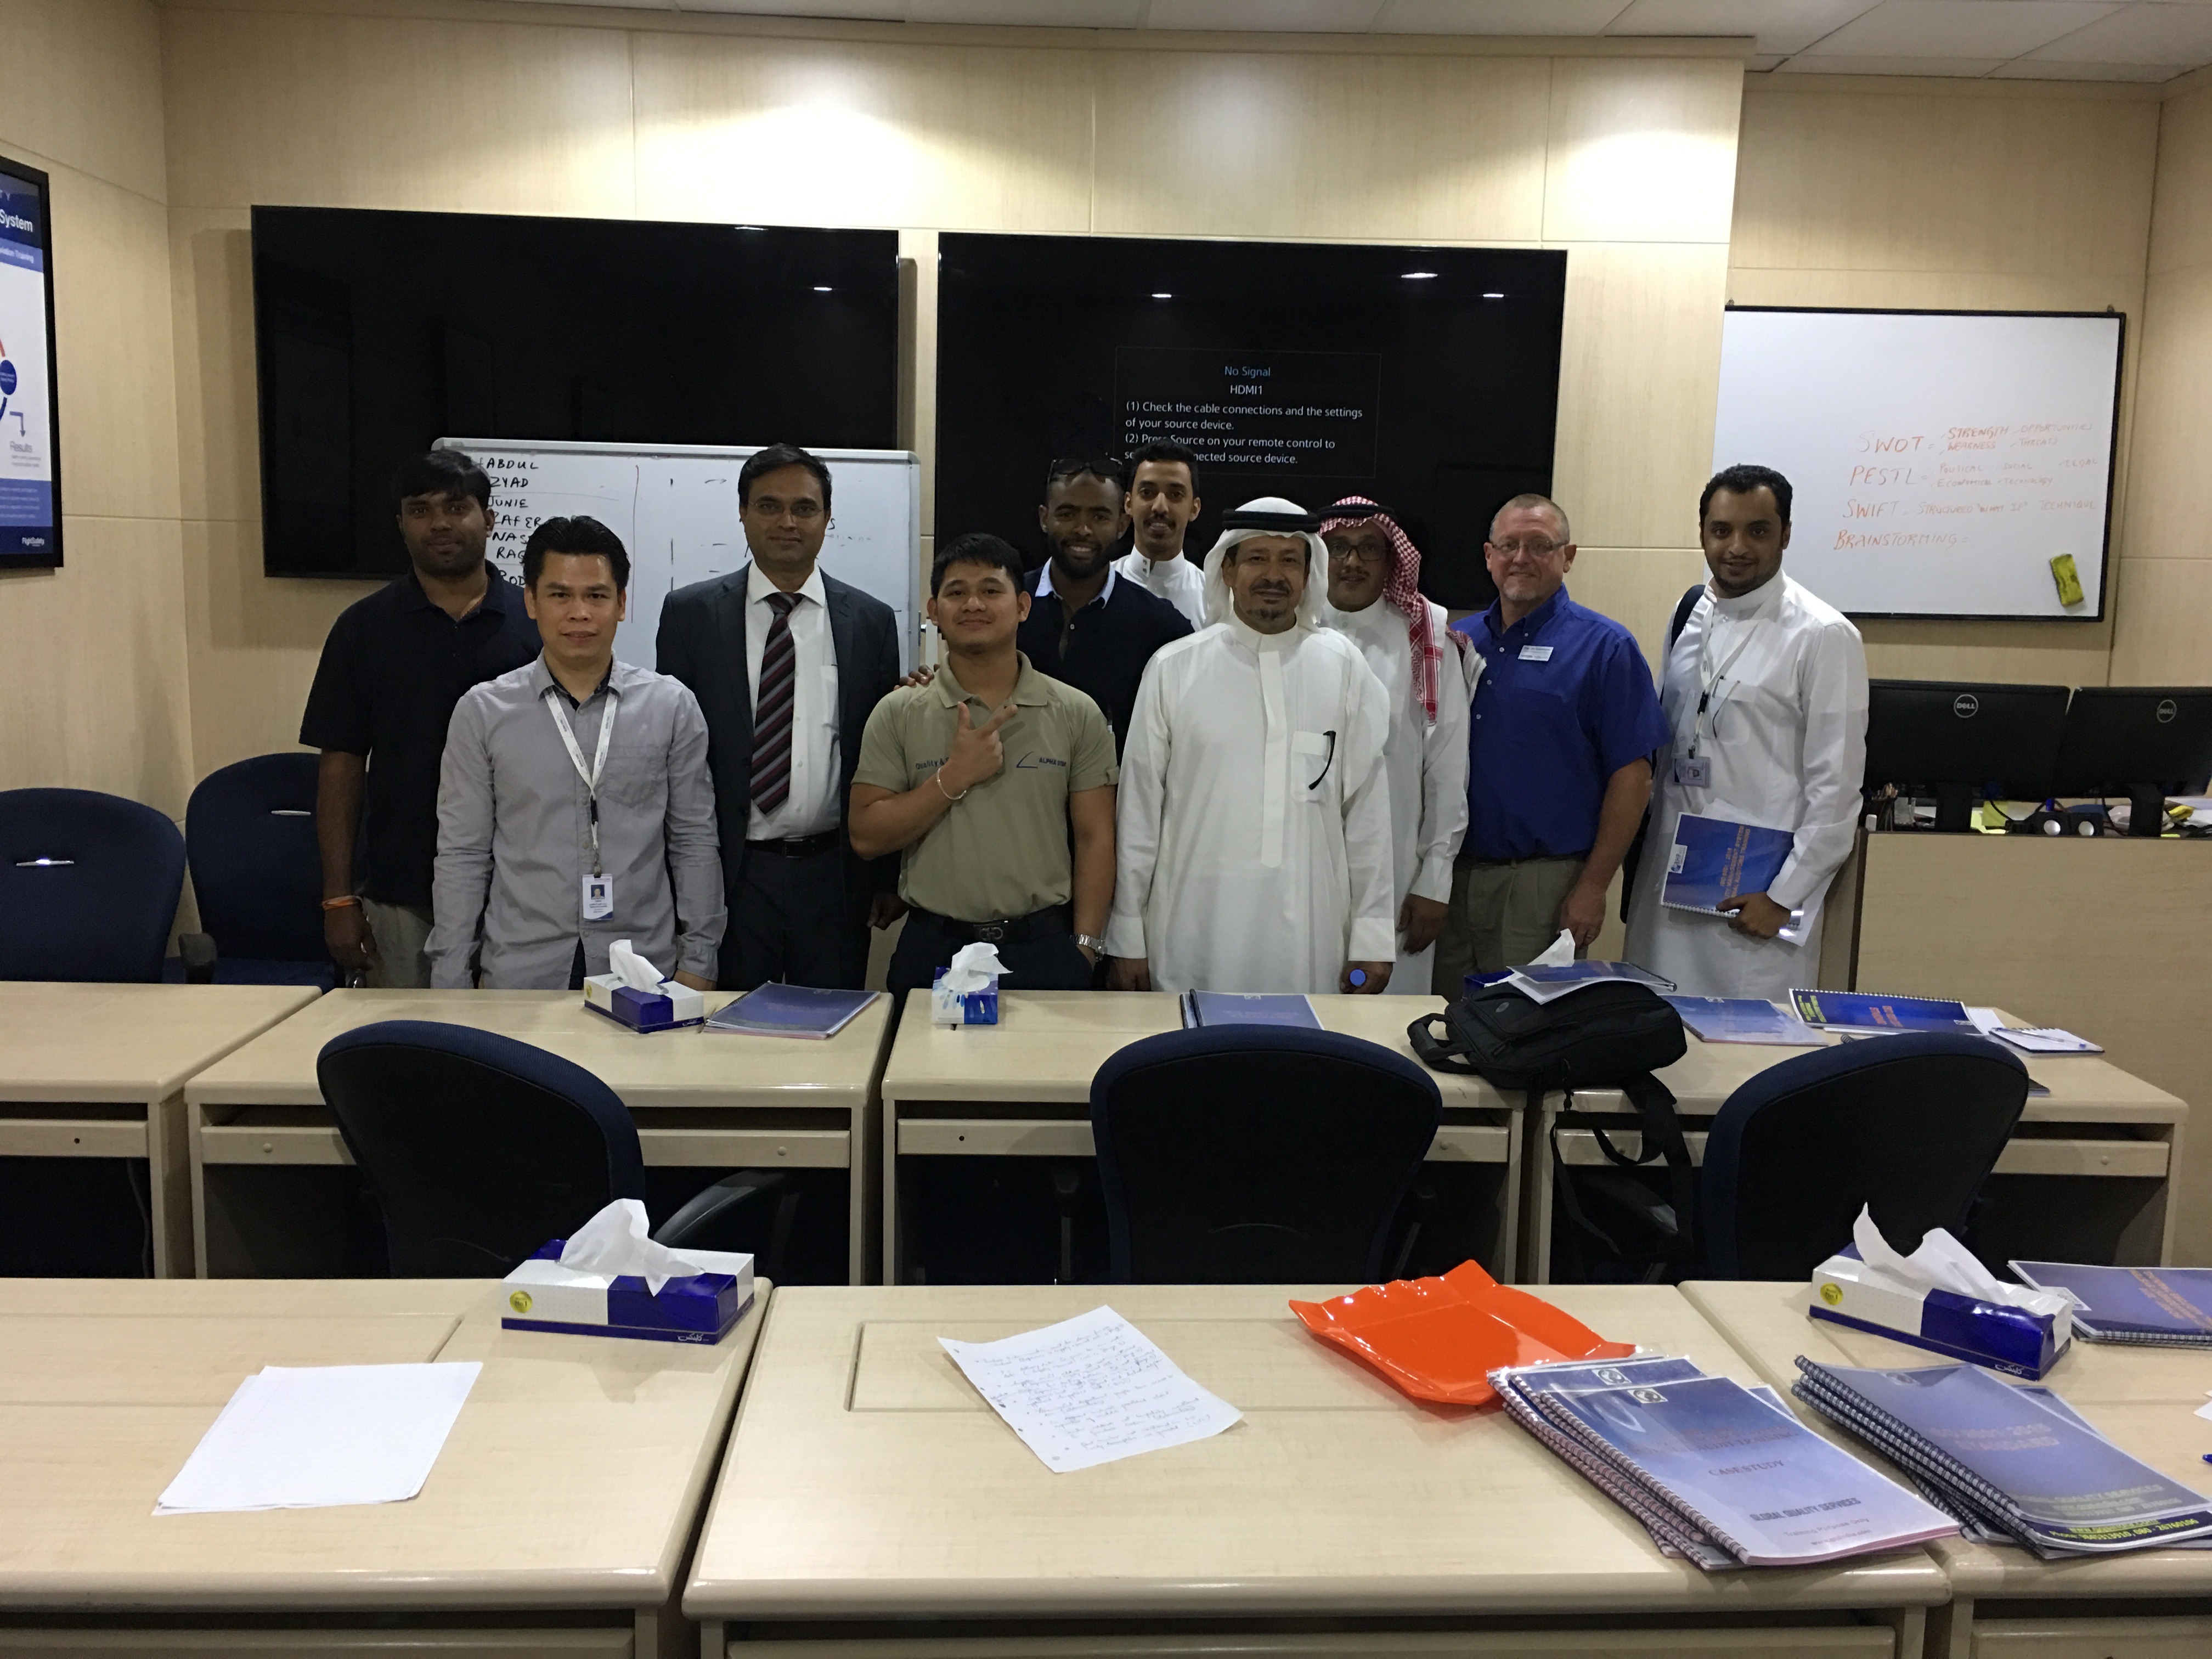 ISO 9001-2015 Training, ISO 9001-2015 Consultants, ISO 9001-2015 Consultancy